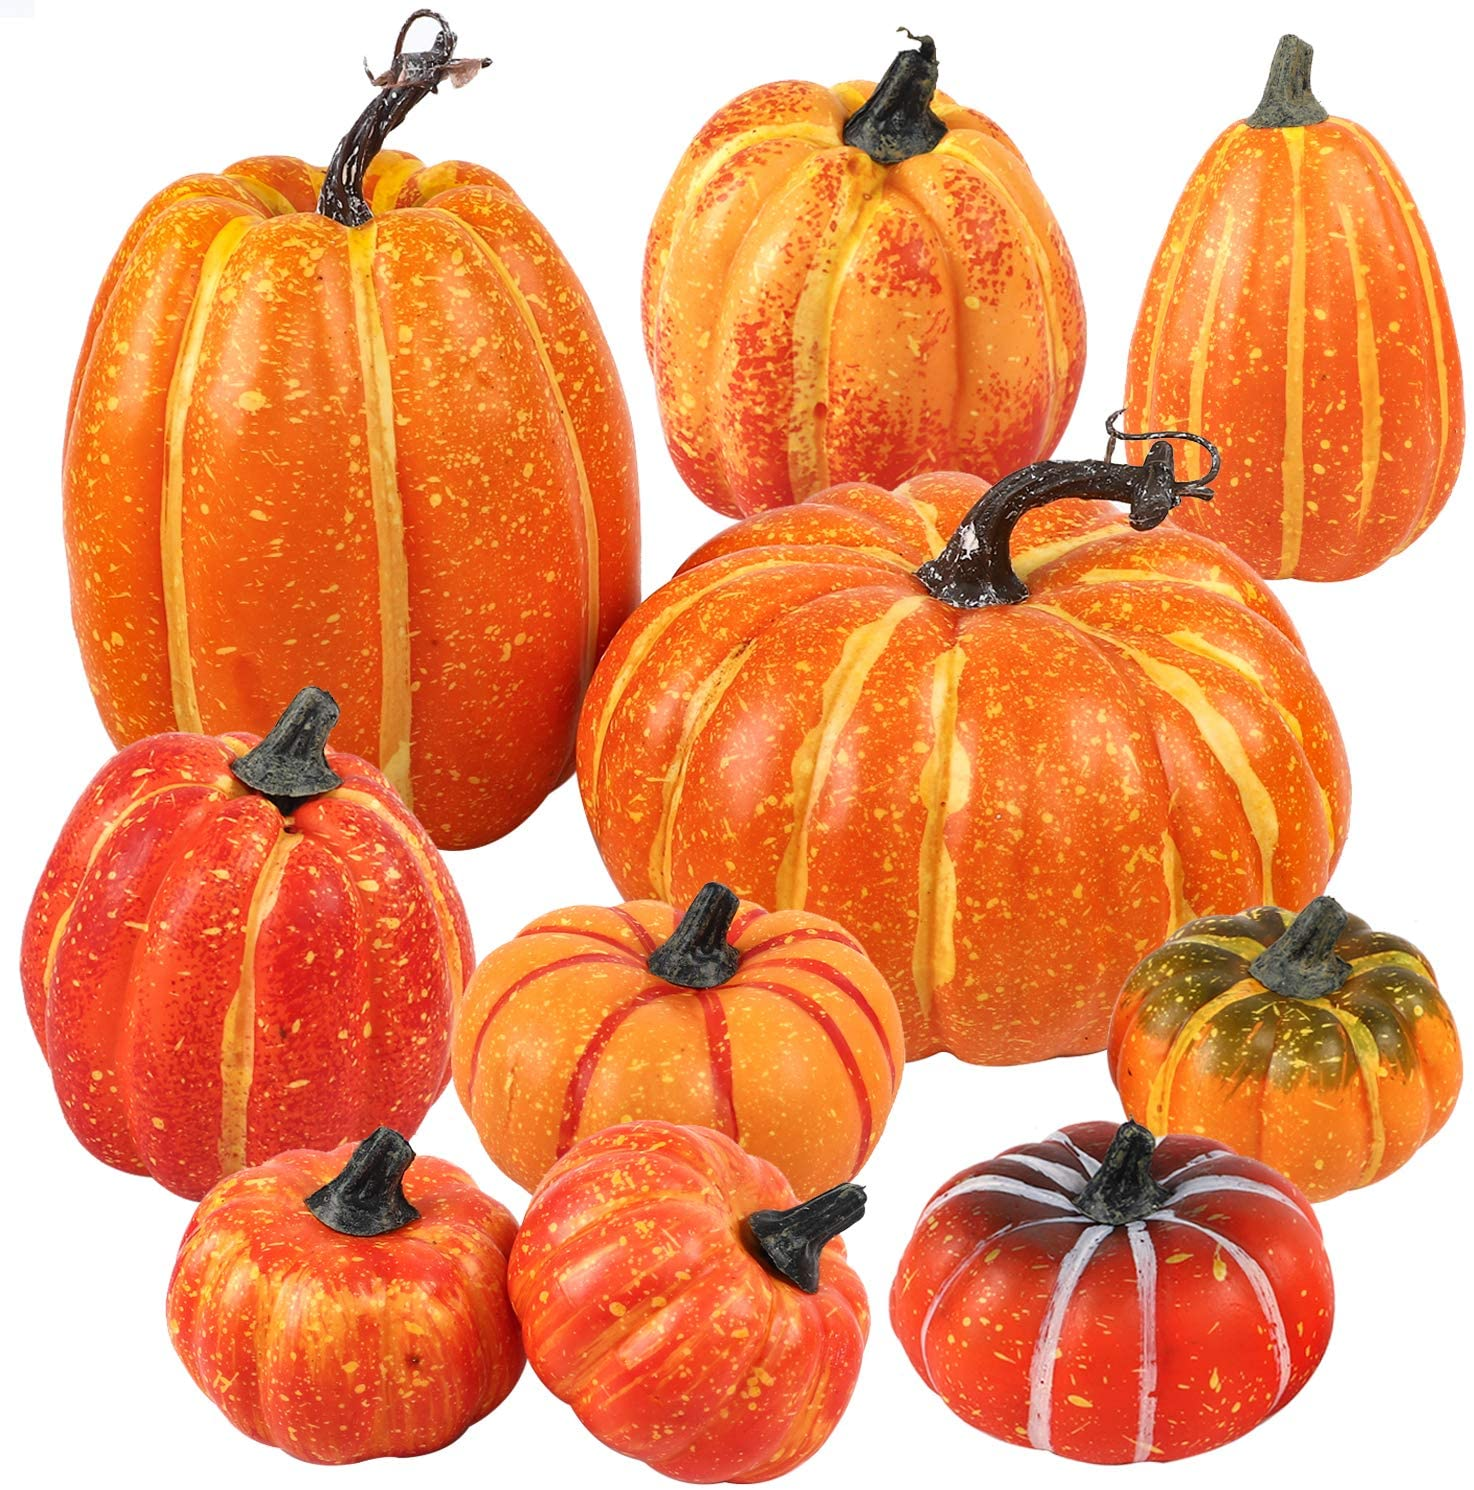 FUNARTY Package of 10 Harvest Artificial Pumpkins Assorted Size Fall Pumpkins for Autumn, Halloween and Thanksgiving Decorating